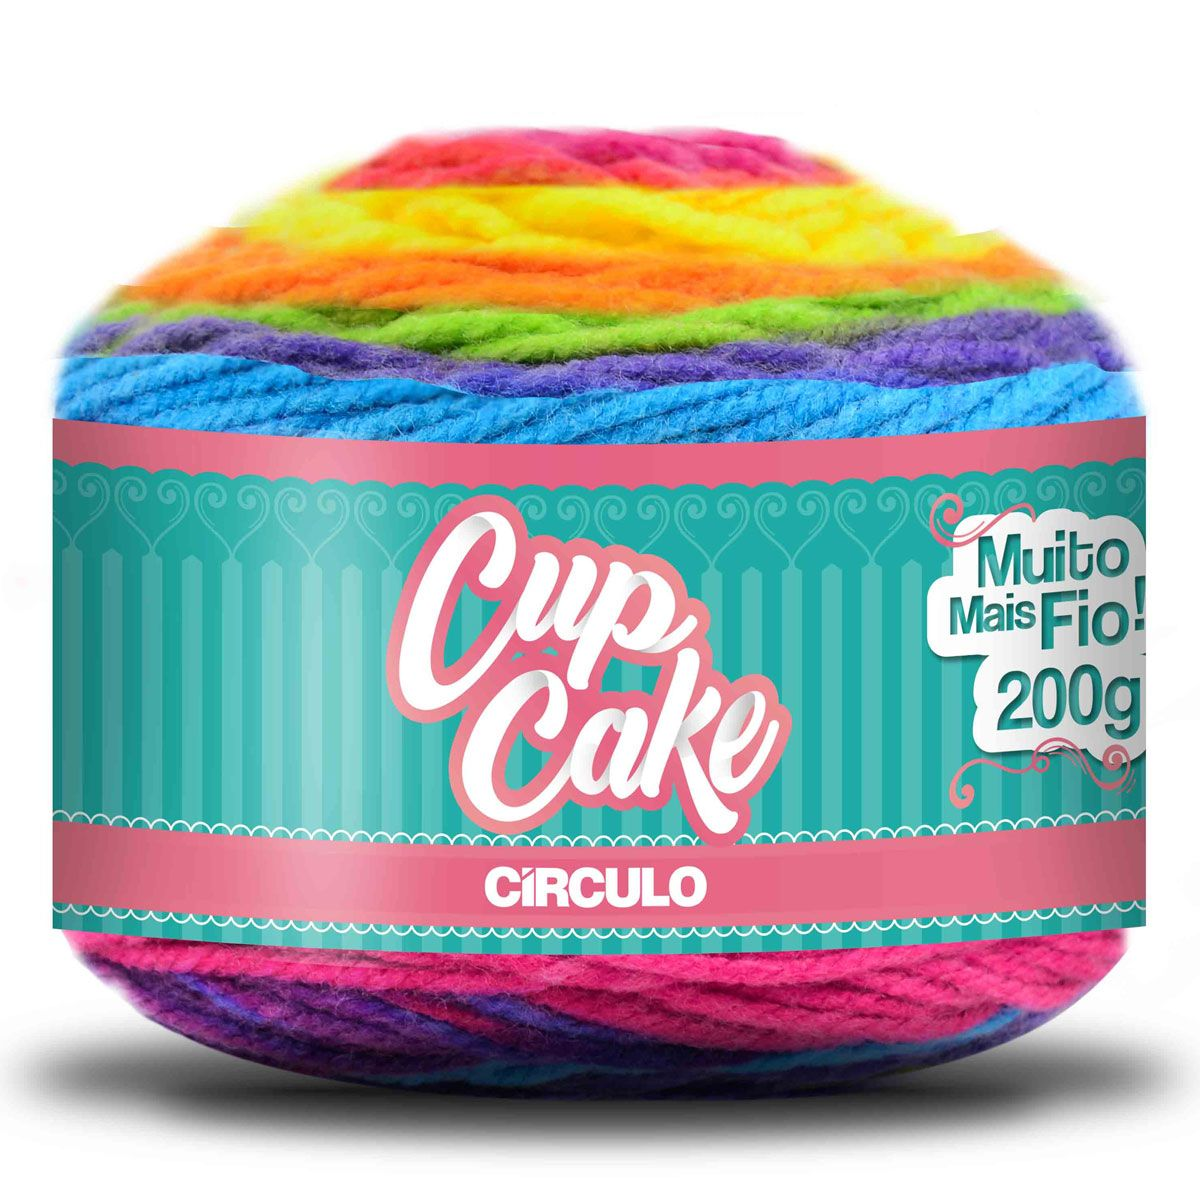 Fio Cup Cake Círculo S/A 200g